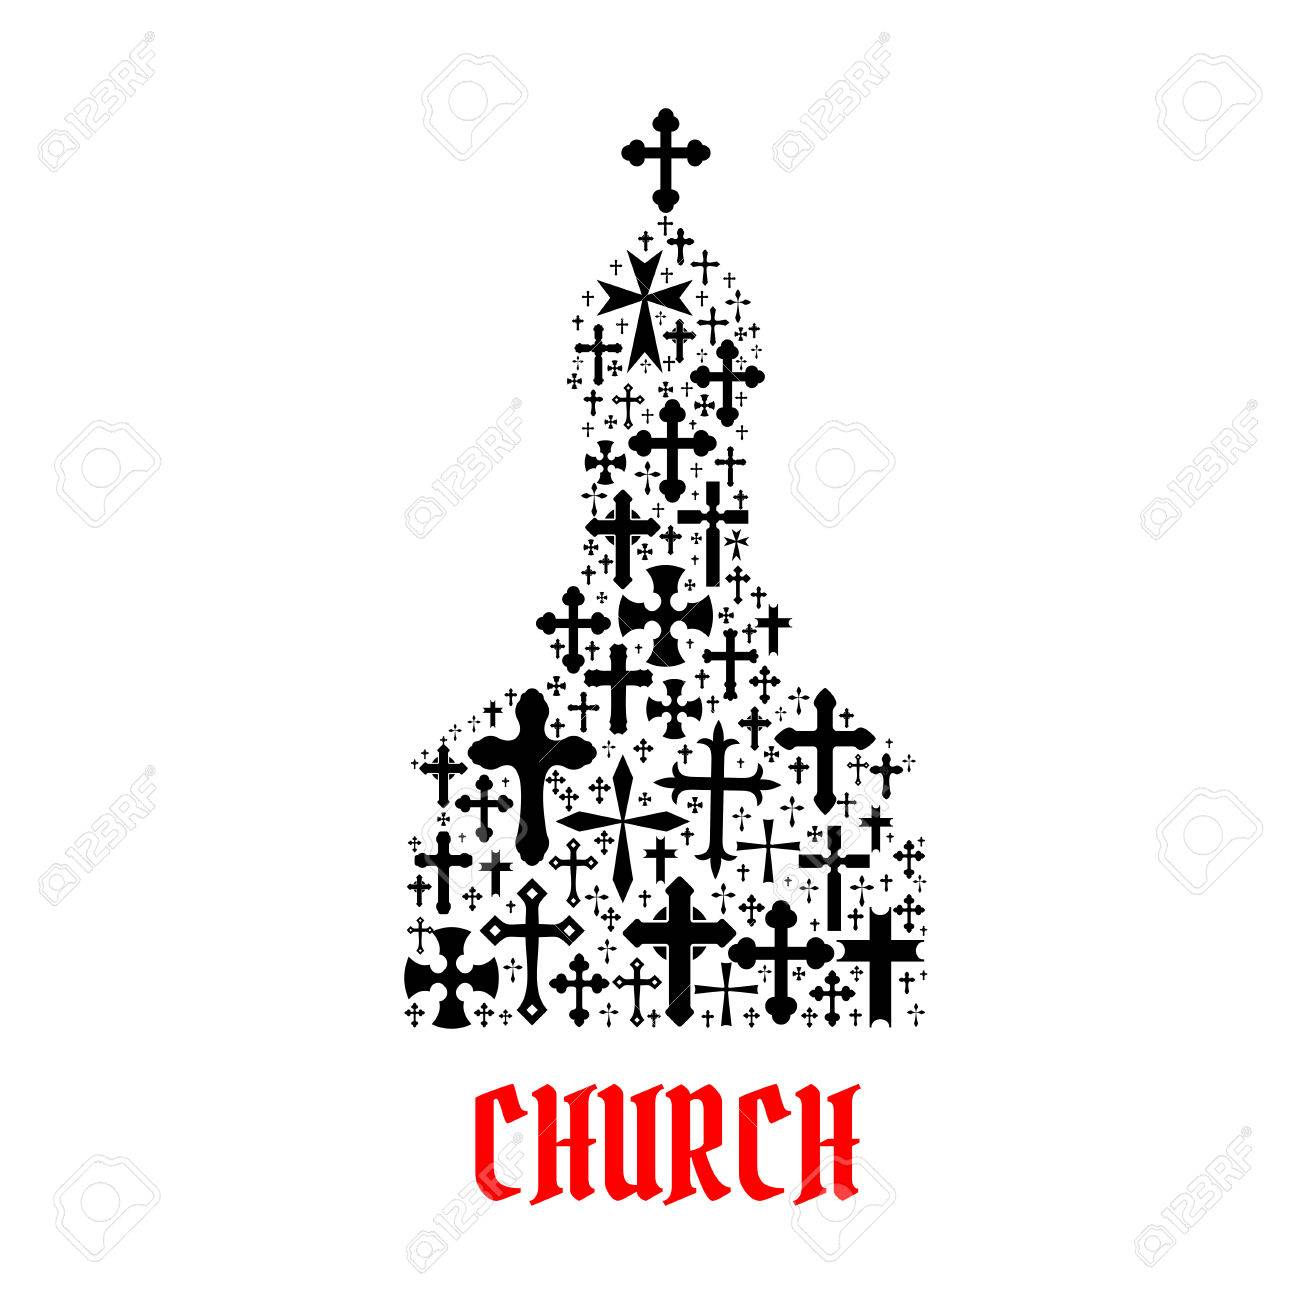 Church icon religion cross christianity symbols in shape of church icon religion cross christianity symbols in shape of temple monastery for religious decoration buycottarizona Gallery